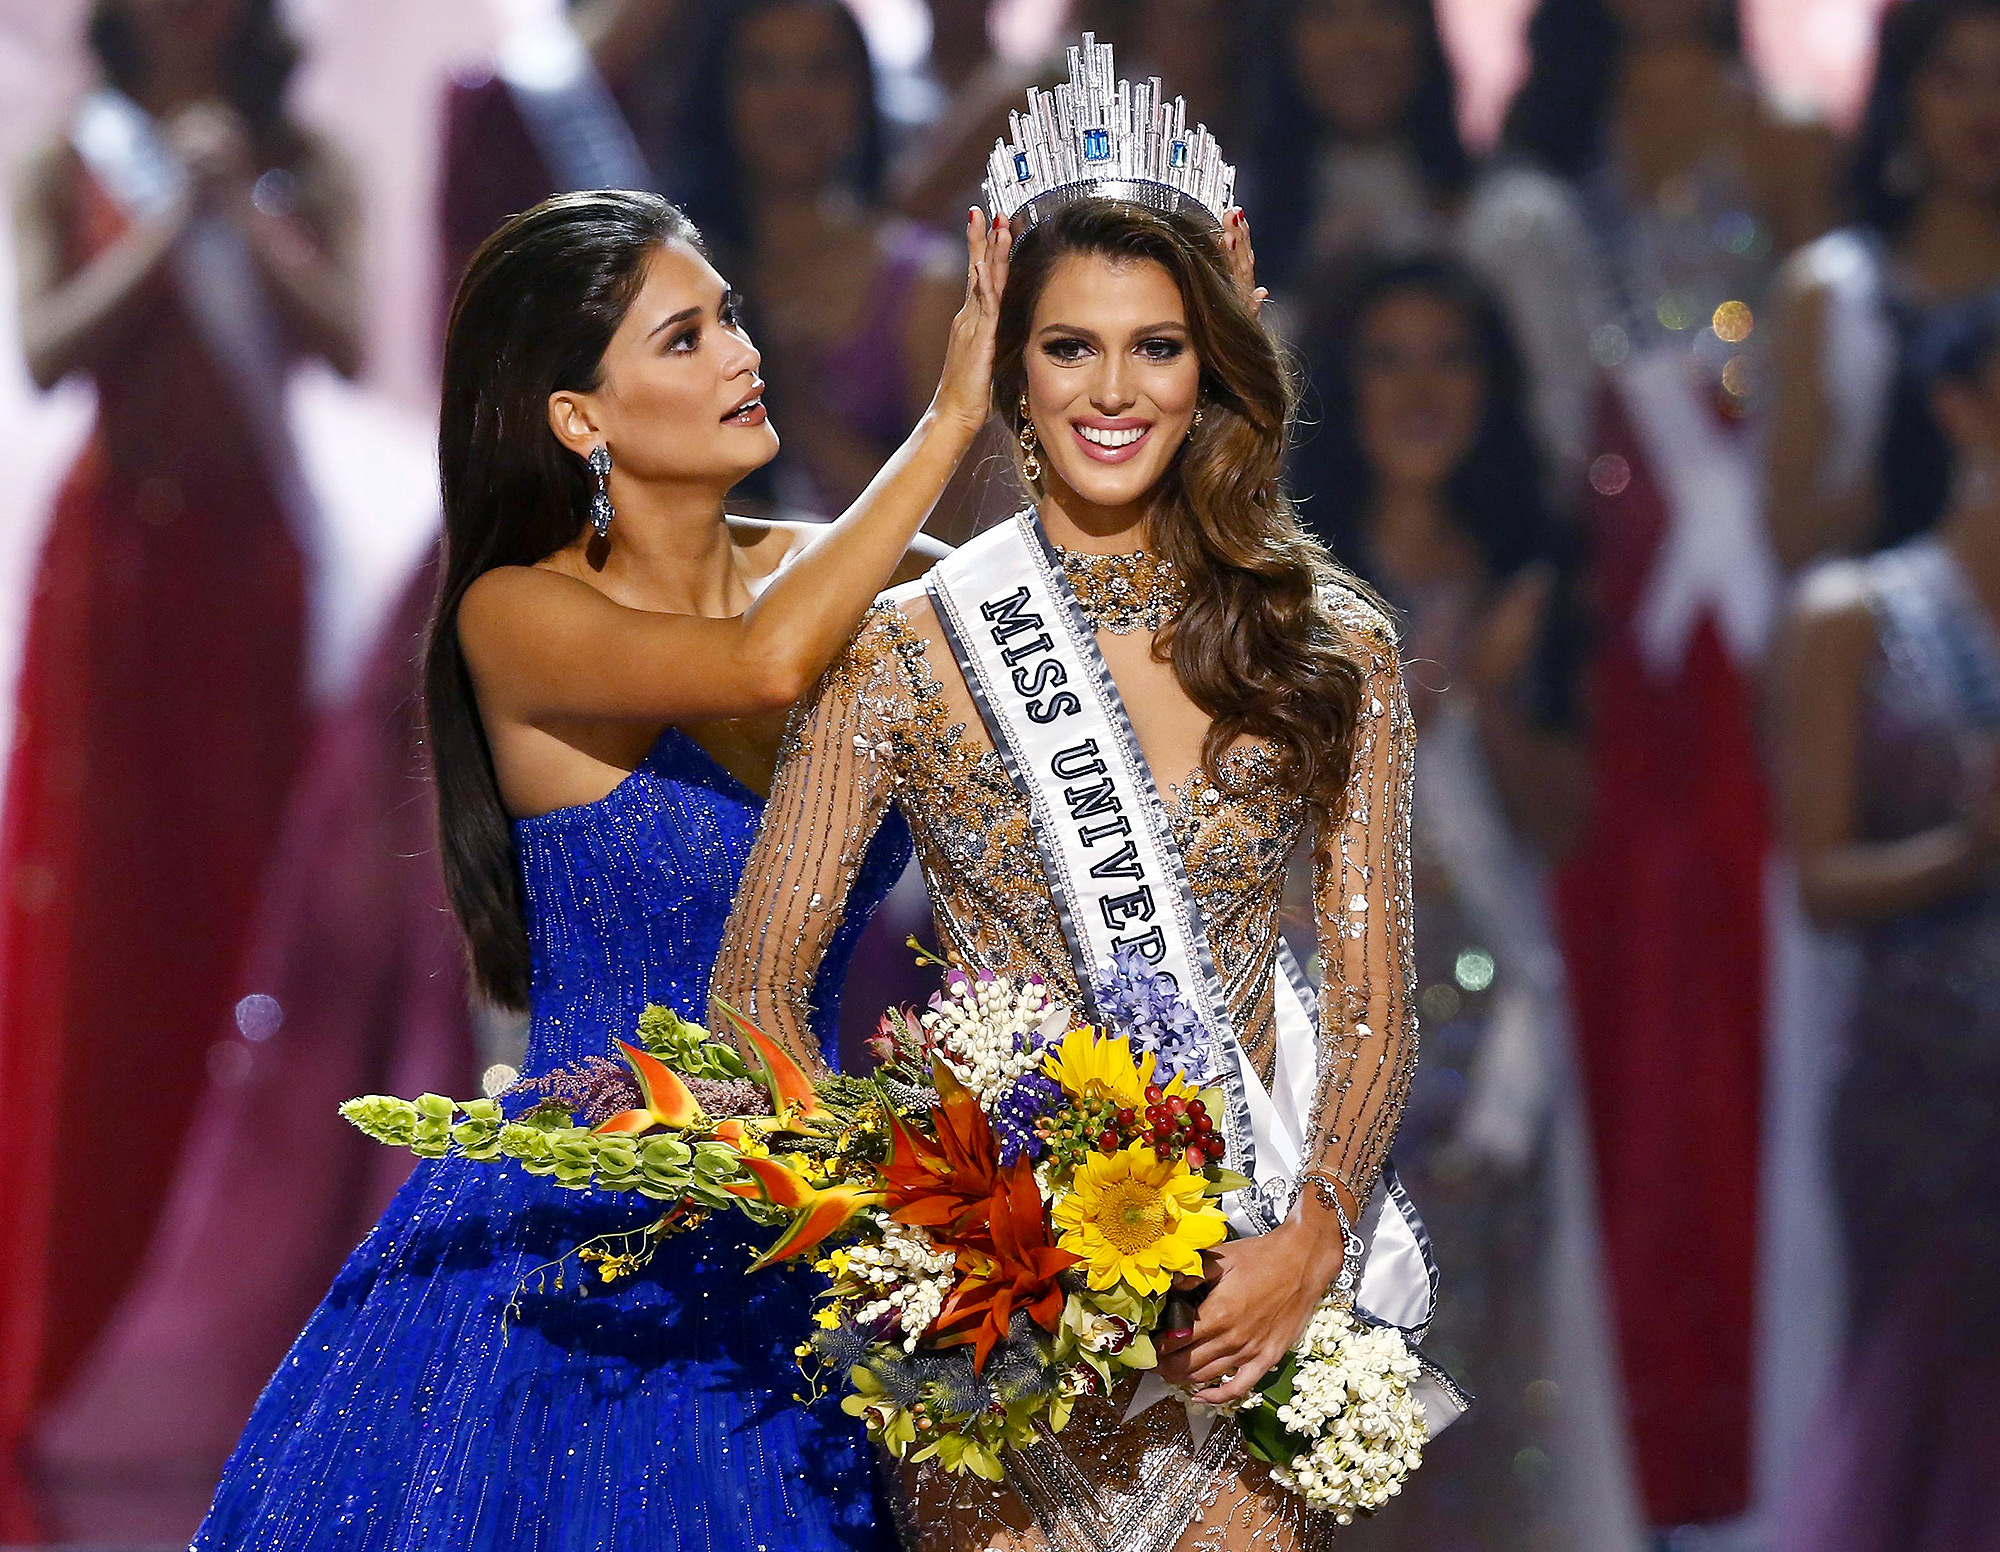 Miss Universe 2017: Miss South Africa receives the crown